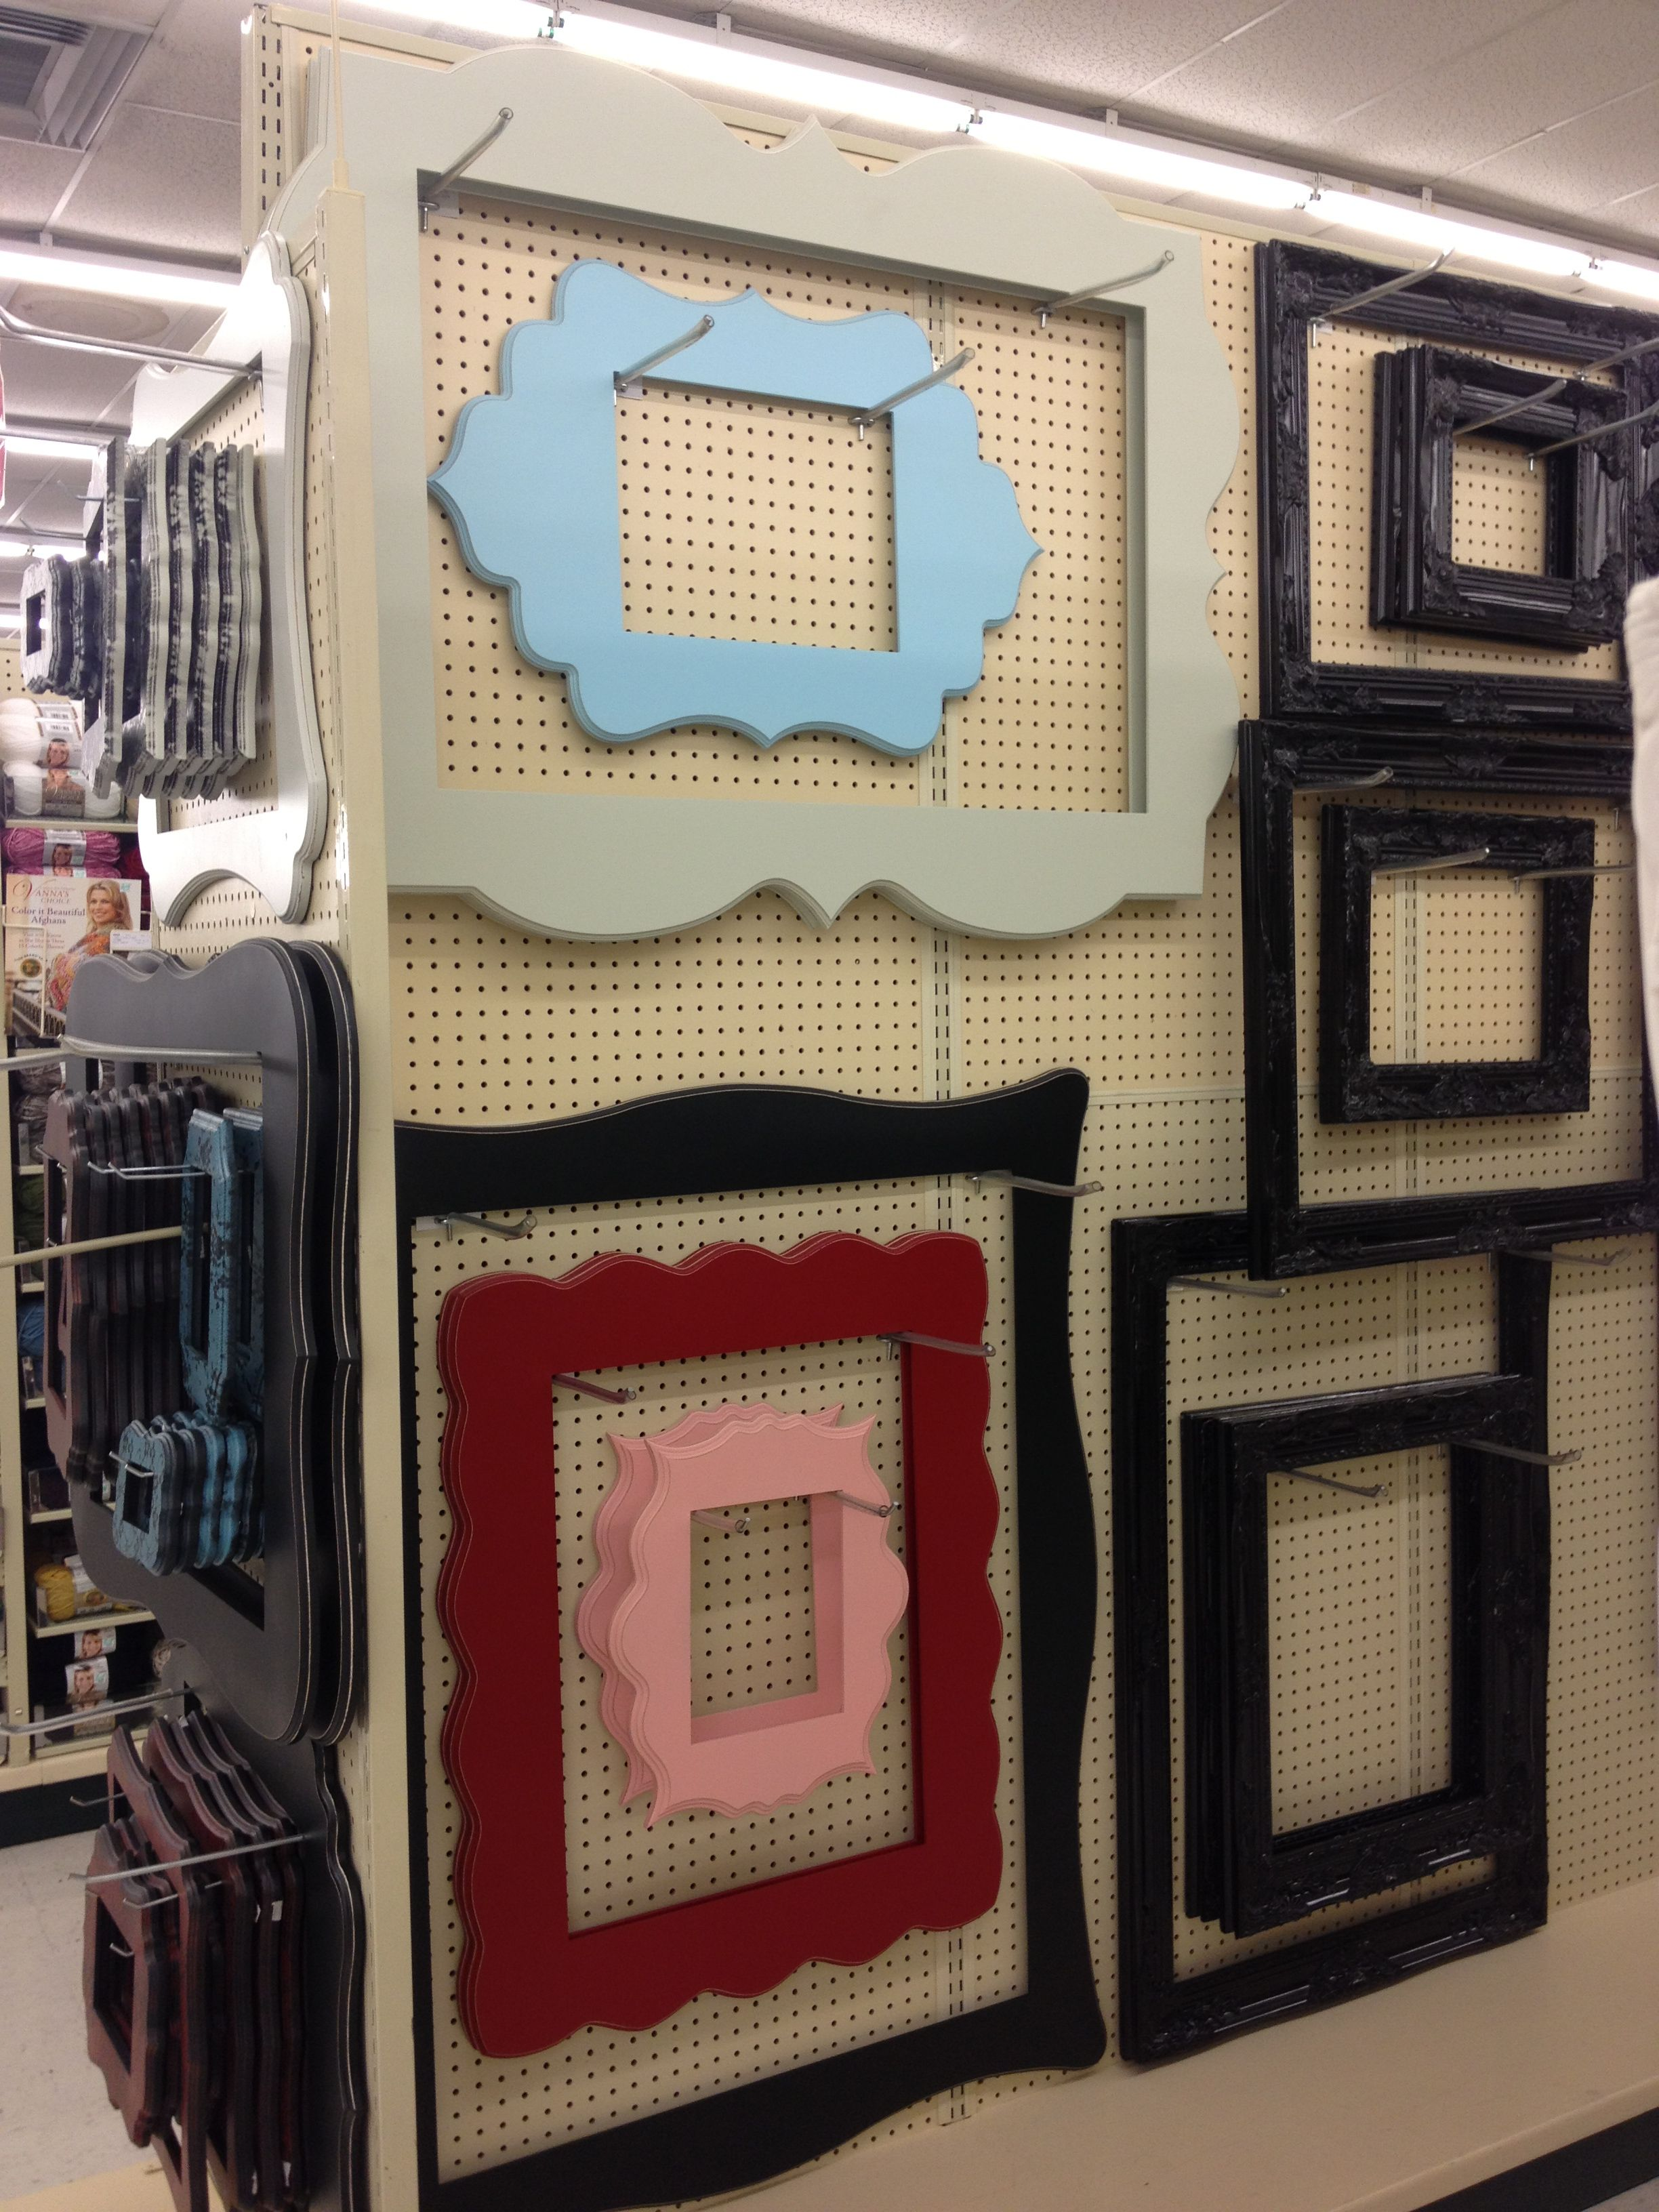 Frames from hobby lobby | Momma room options | Pinterest | Lobbies ...